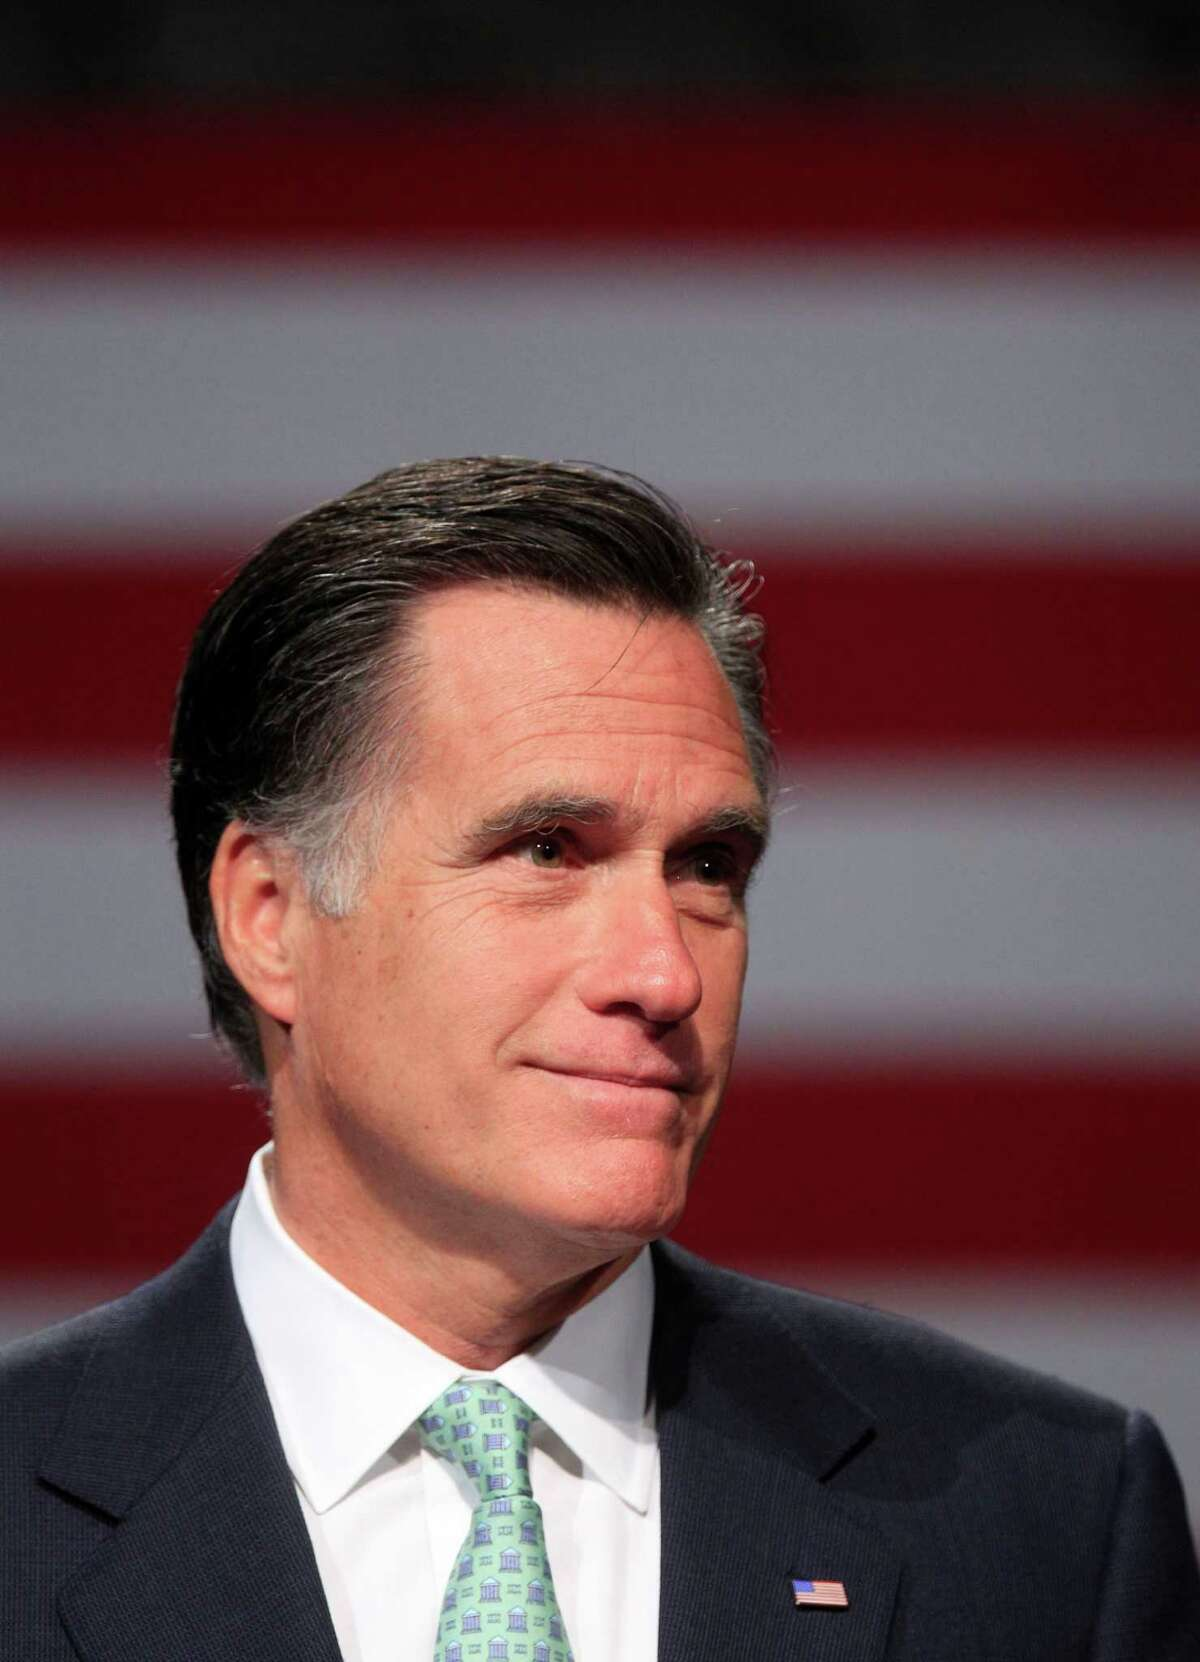 Republican presidential candidate, former Massachusetts Gov. Mitt Romney speaks at Lansing Community College in Lansing, Mich., Tuesday, May 8, 2012. (AP Photo/Carlos Osorio)